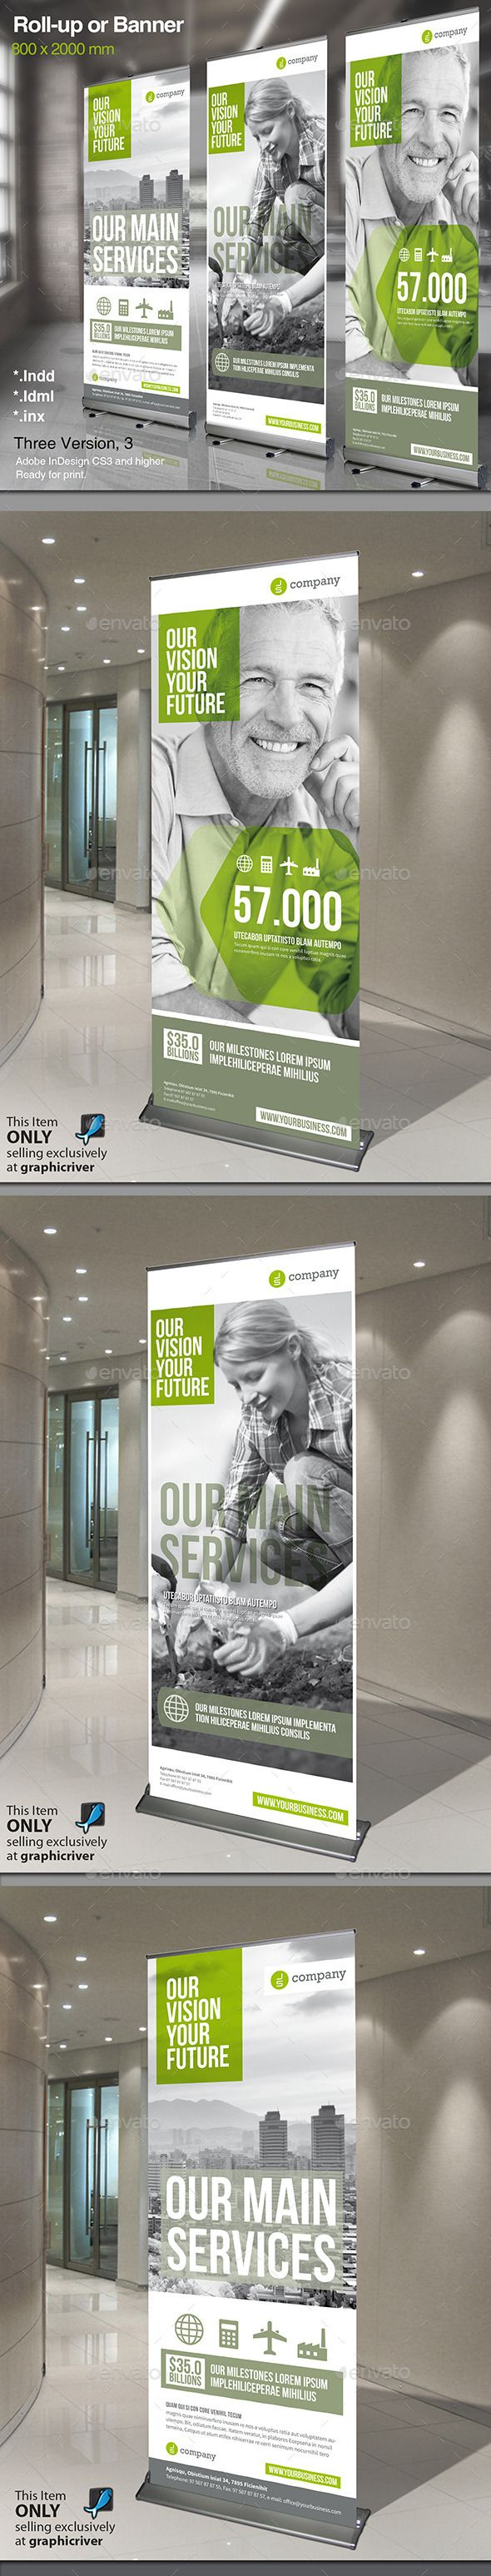 Corporate Roll-up or Banner Design Tempalte Download: http://graphicriver.net/item/corporate-rollup-or-banner/12946157?ref=ksioks